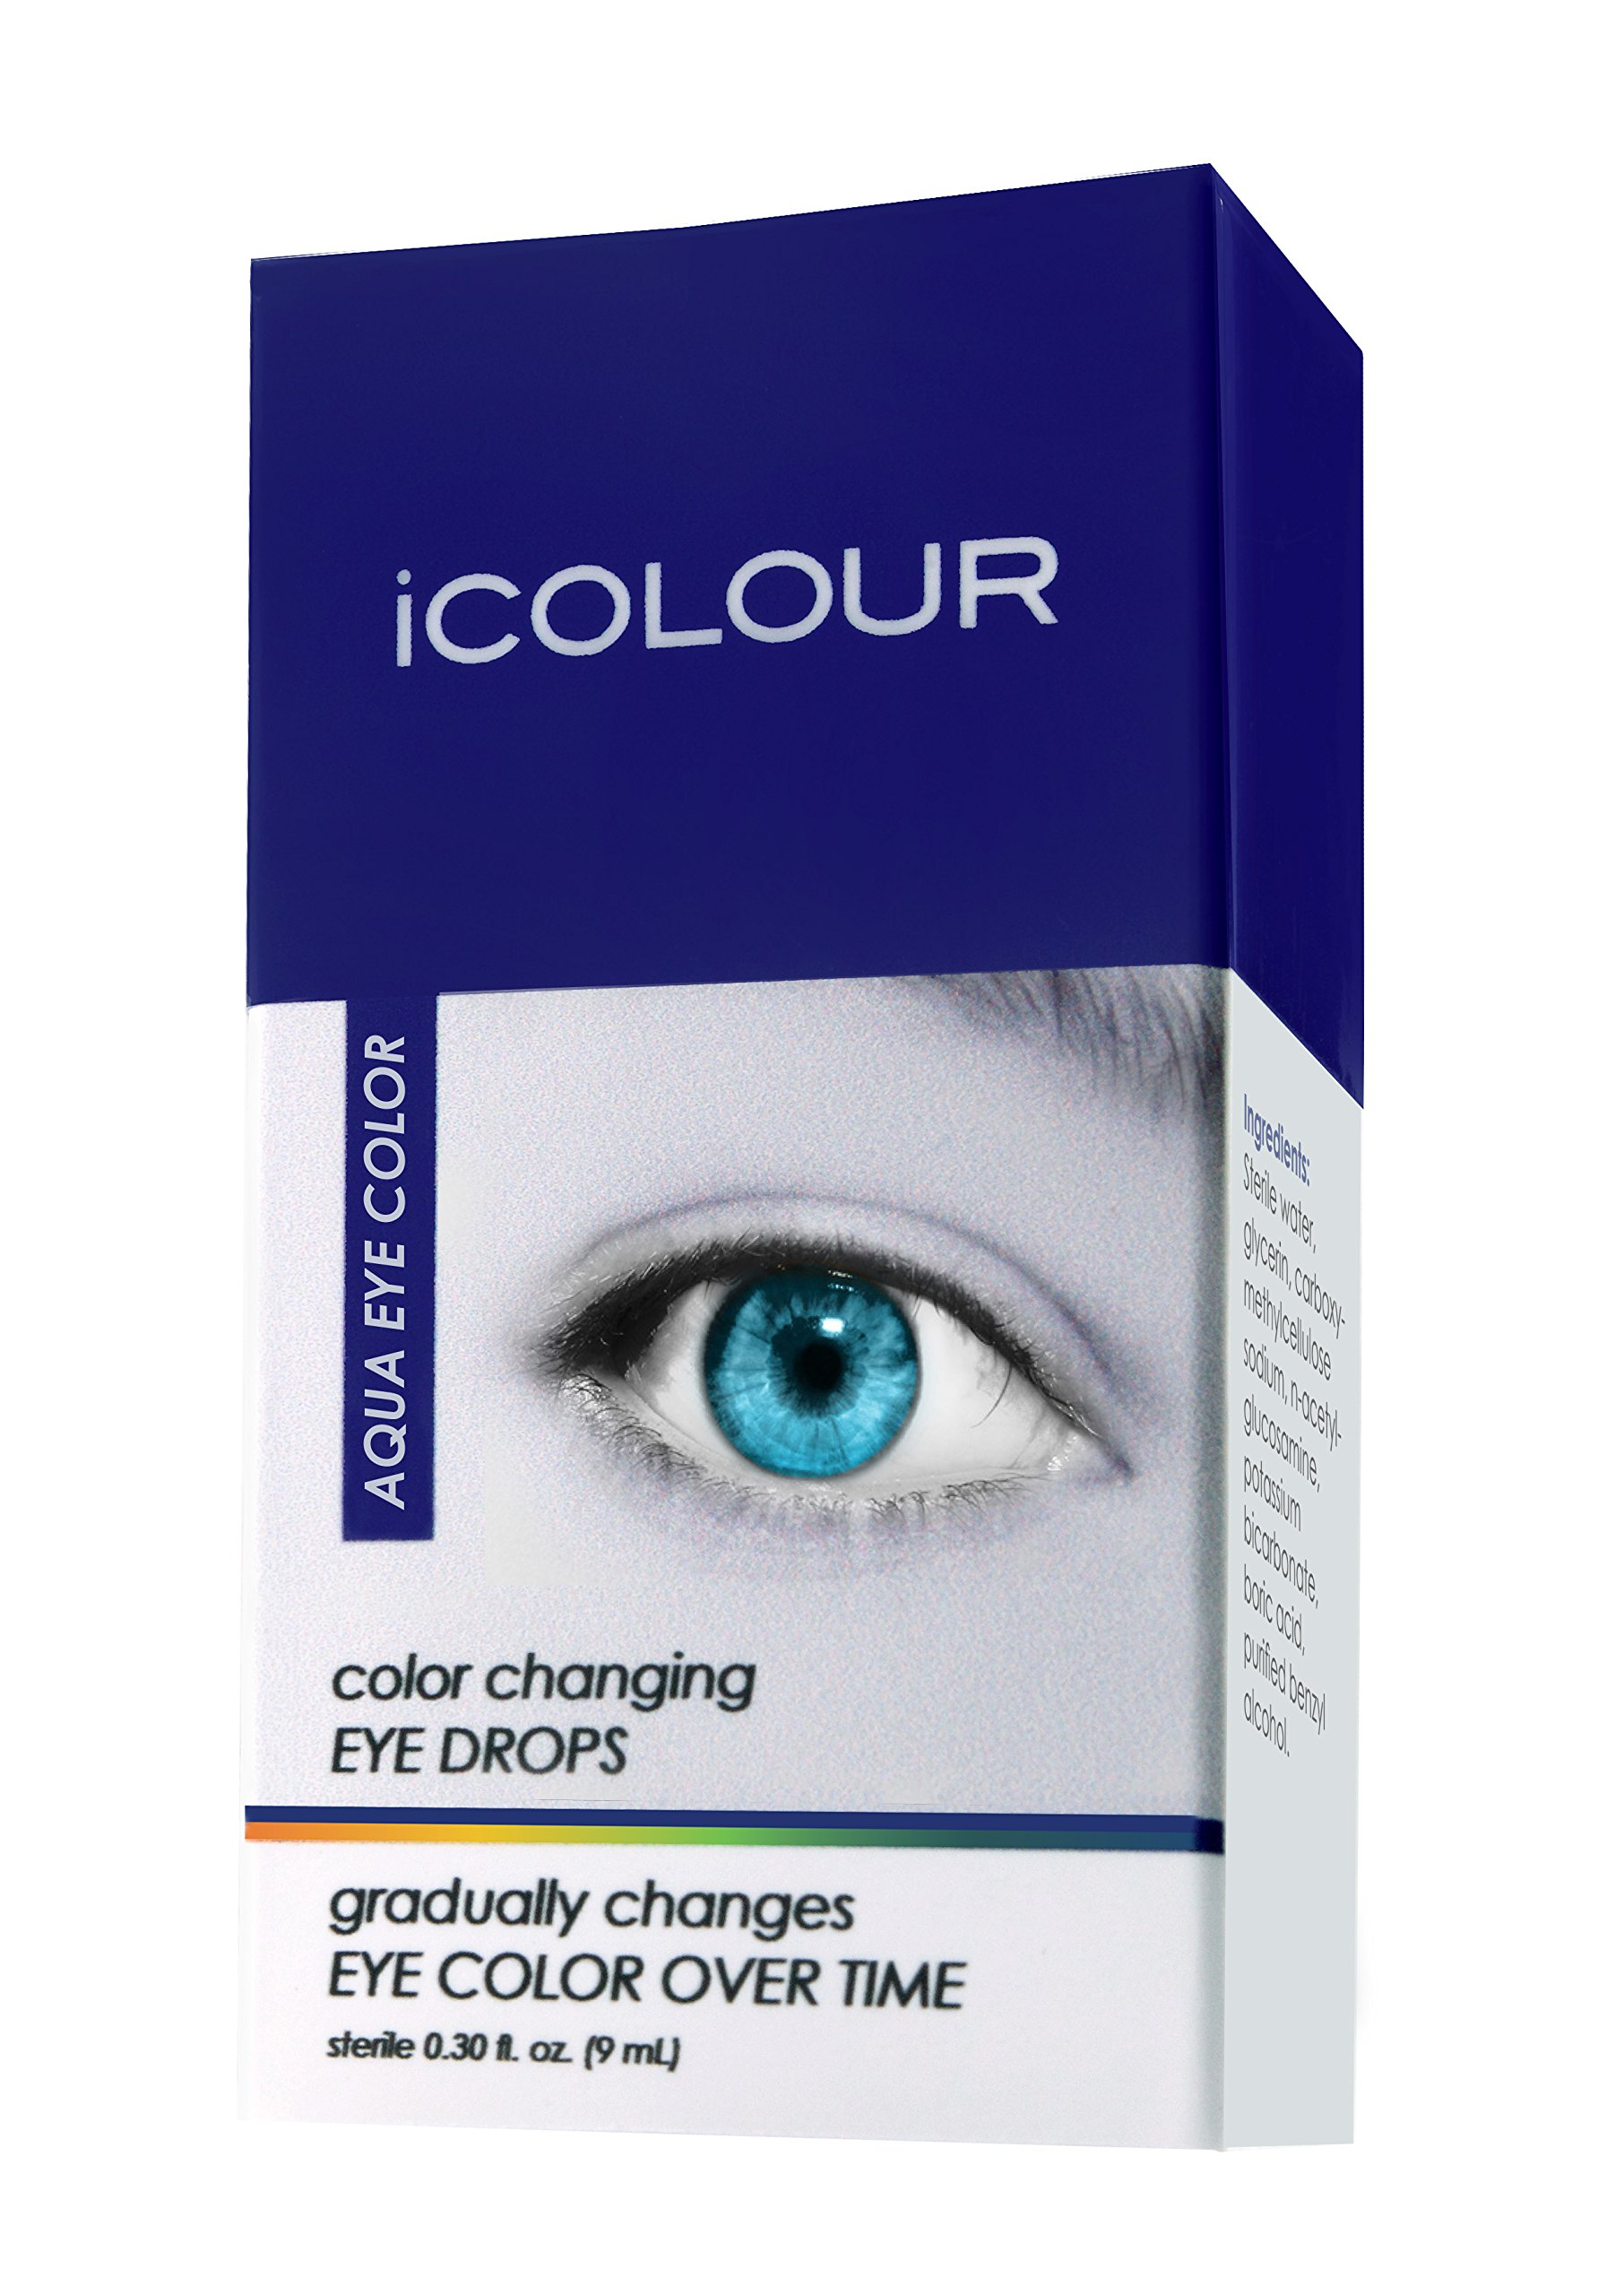 iCOLOUR Color Changing Eye Drops - Change Your Eye Color Naturally - 1 Month Supply - 9 mL (Aqua)